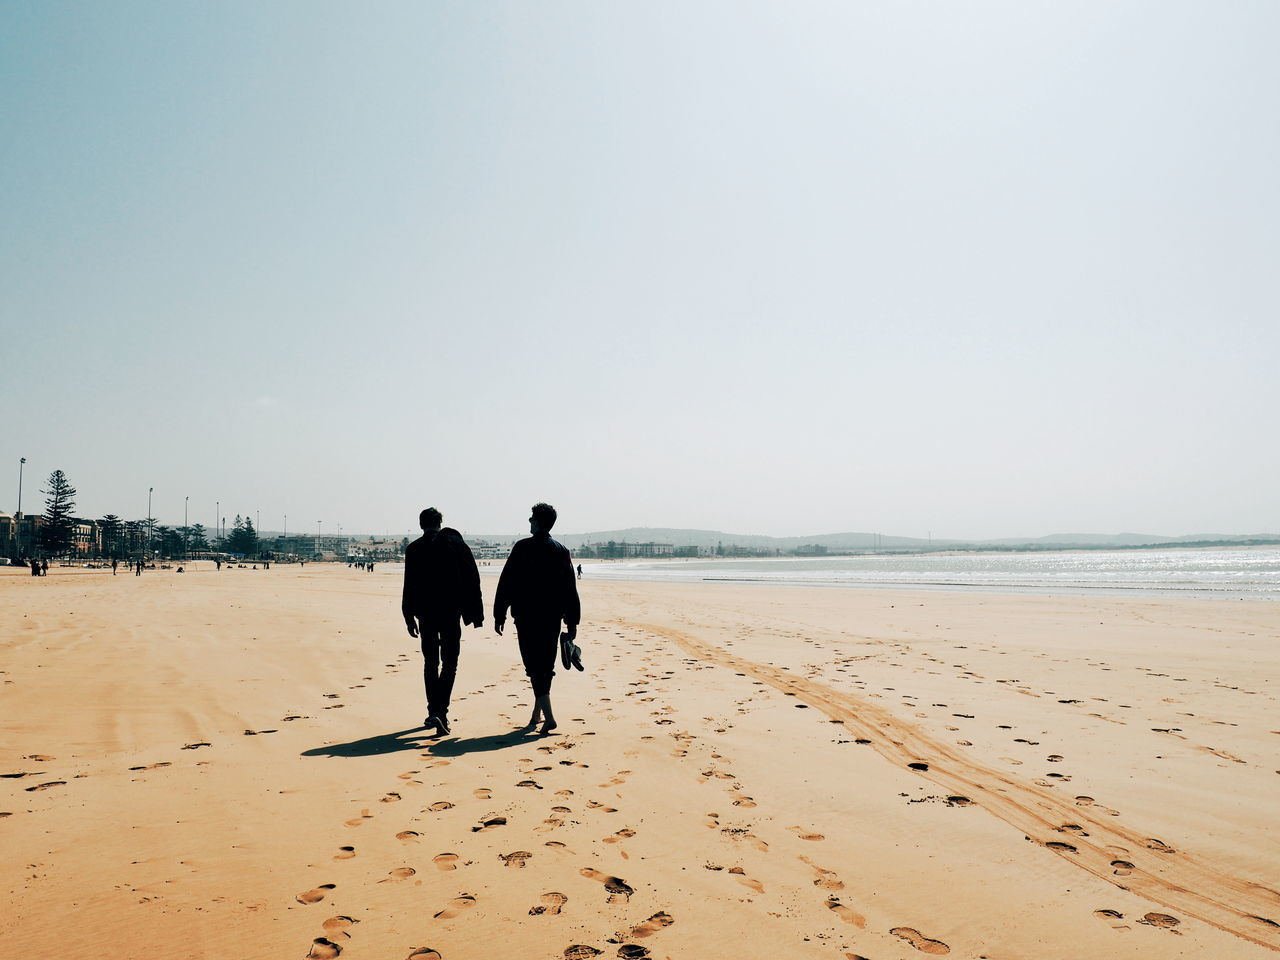 sand, beach, walking, sea, real people, full length, rear view, clear sky, nature, two people, scenics, men, togetherness, horizon over water, lifestyles, beauty in nature, day, vacations, outdoors, sky, water, sand dune, mammal, people